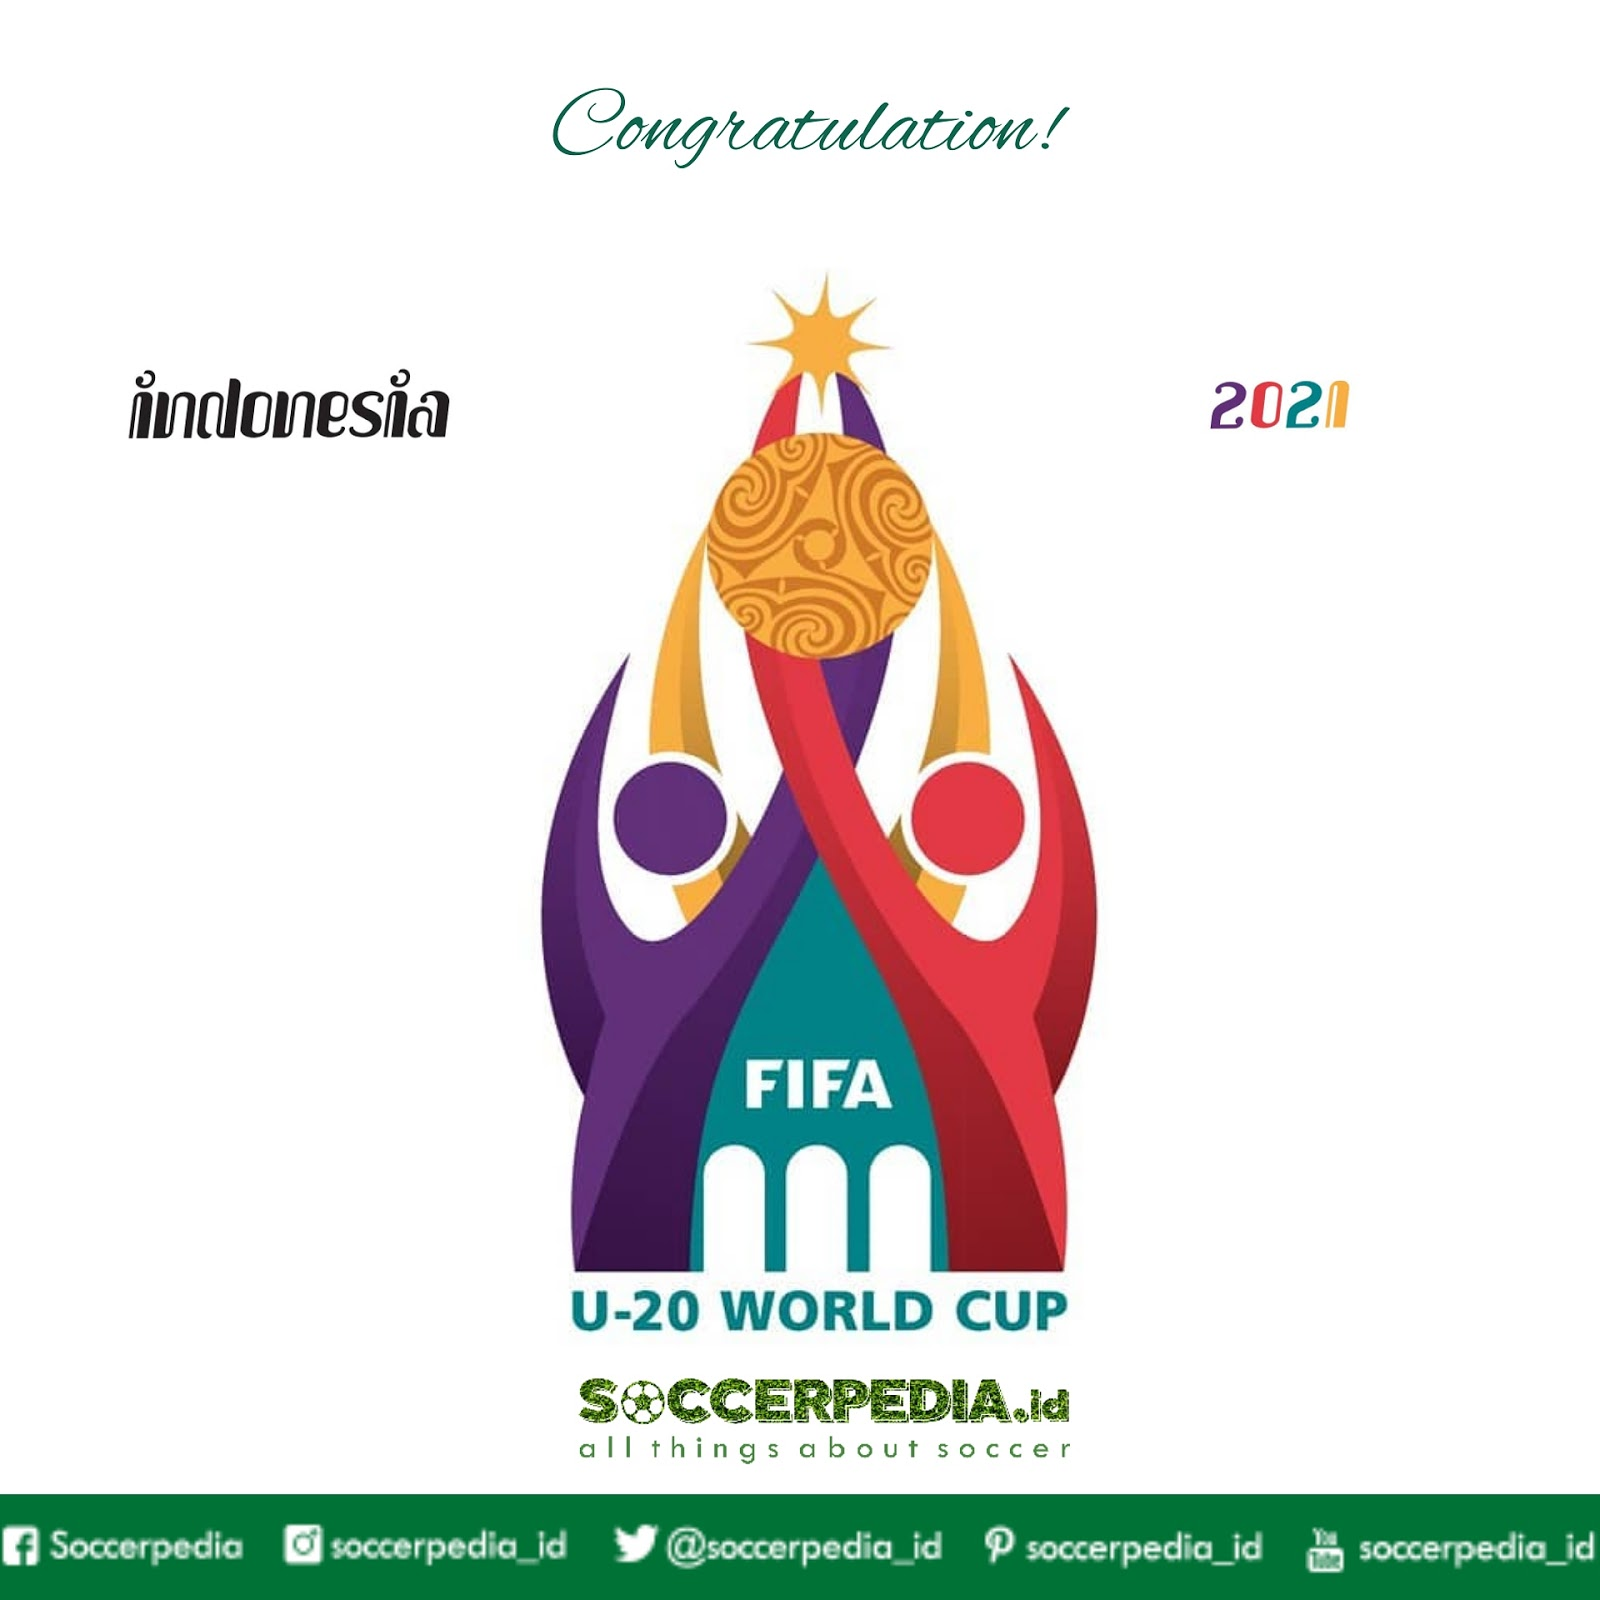 The Battle Arenas of 2021 FIFA U-20 World Cup at Indonesia